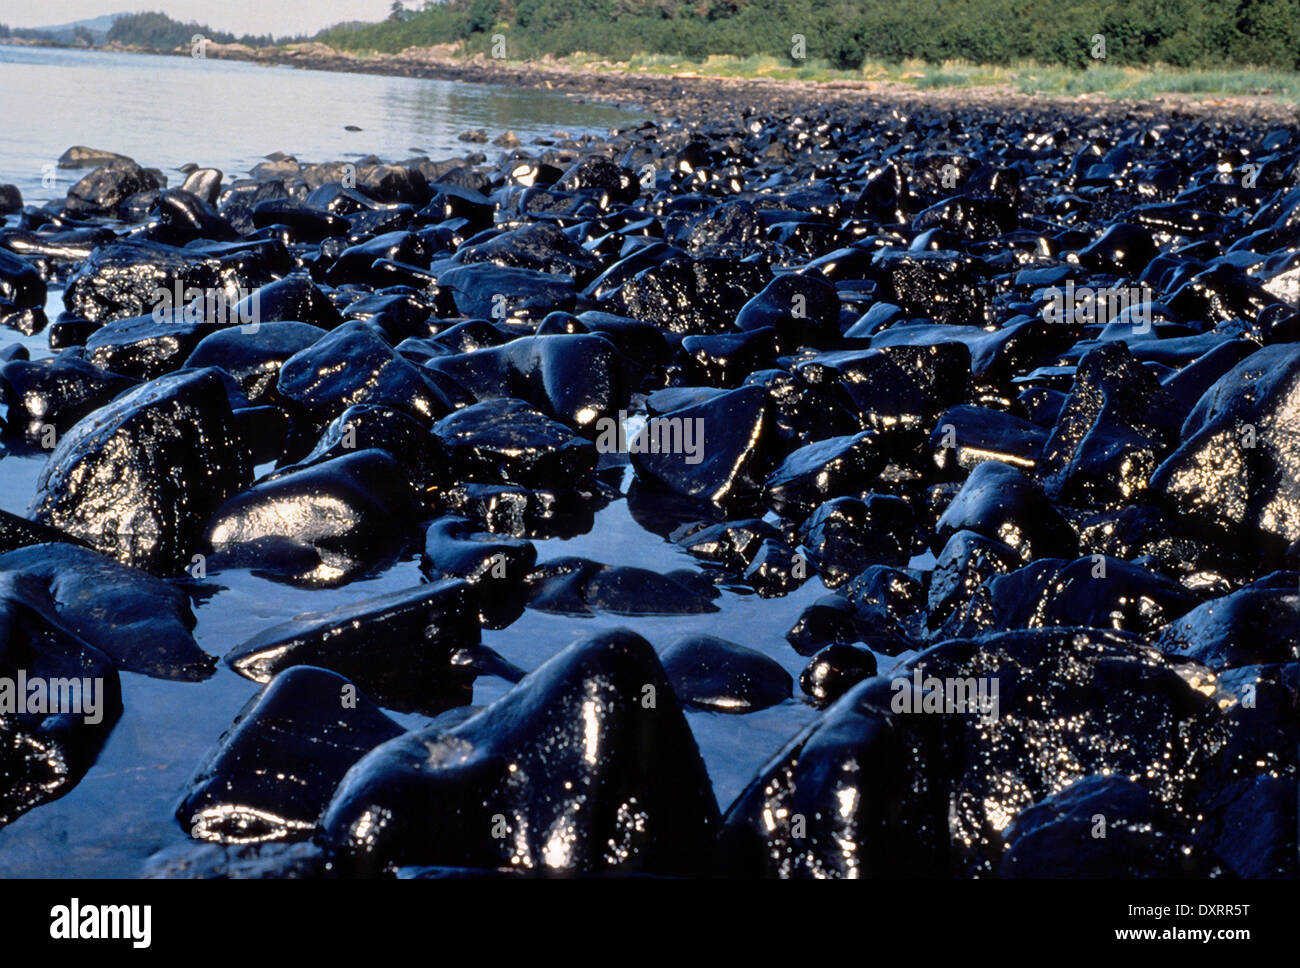 exxon oil spill 20 years after the exxon valdez: preventing--and preparing for--the next oil spill disaster [slide show] the biggest oil spill in us history sparked improvements in tanker construction and.